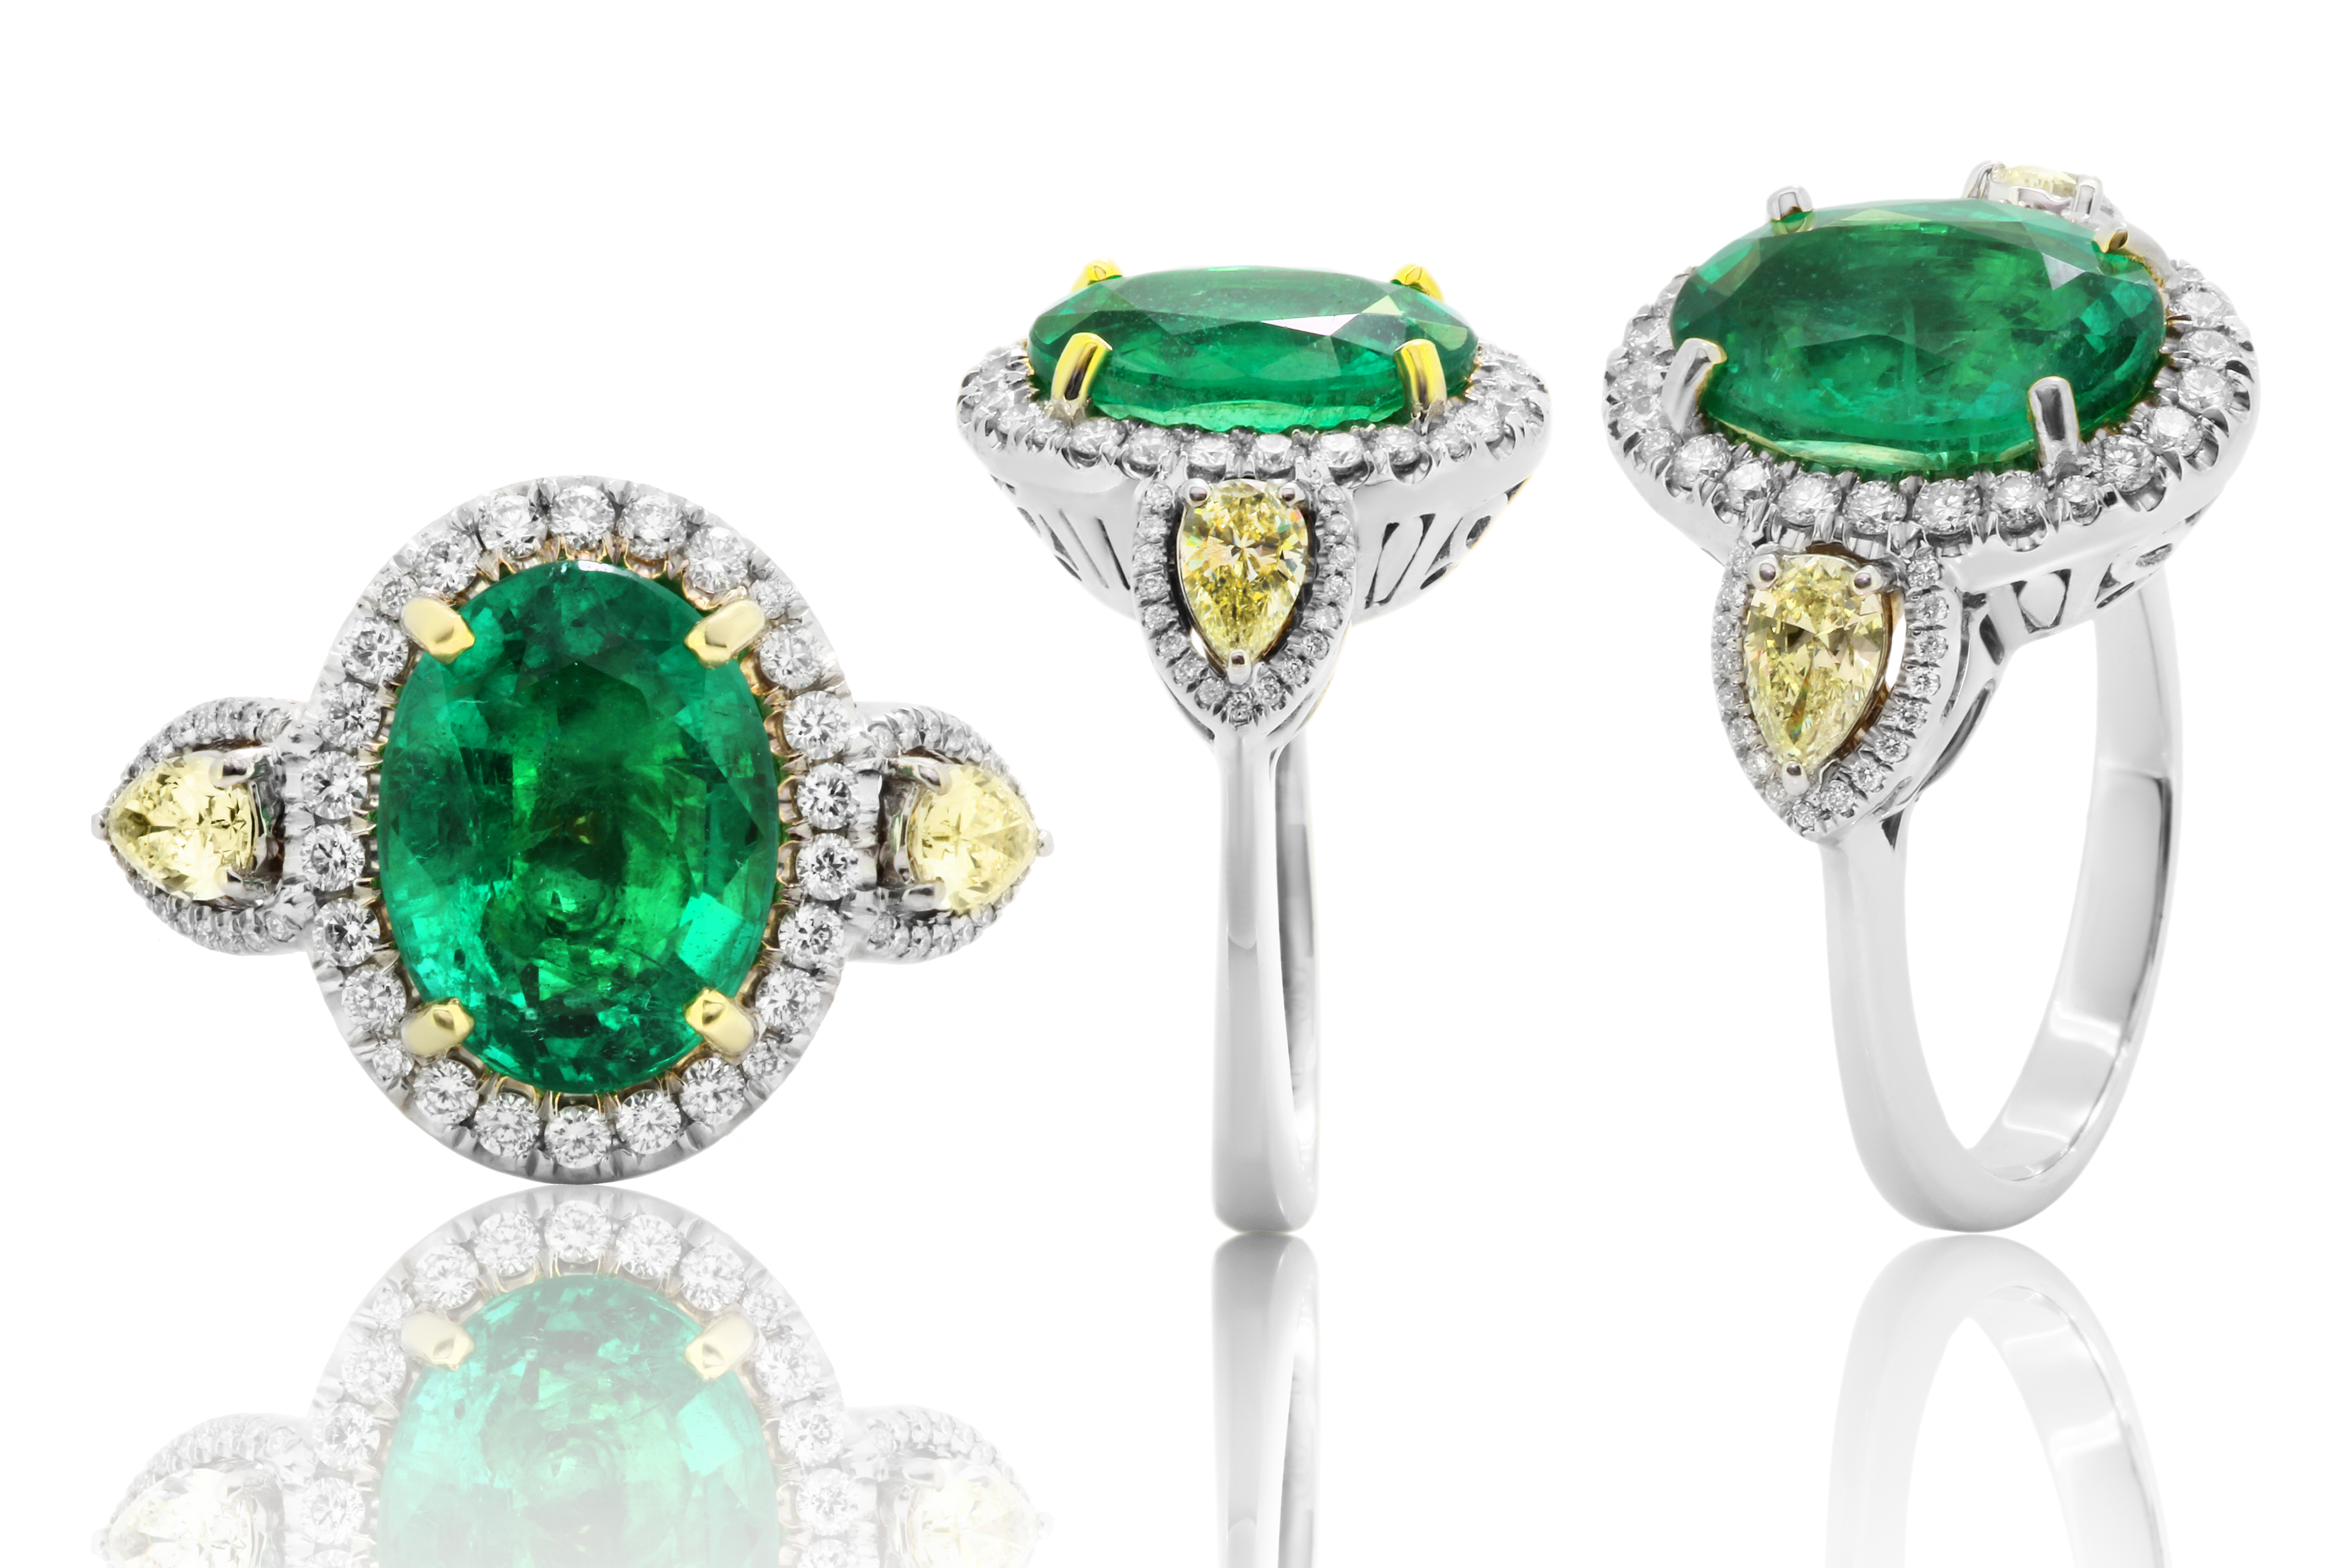 Emerald ring with diamonds and gems_